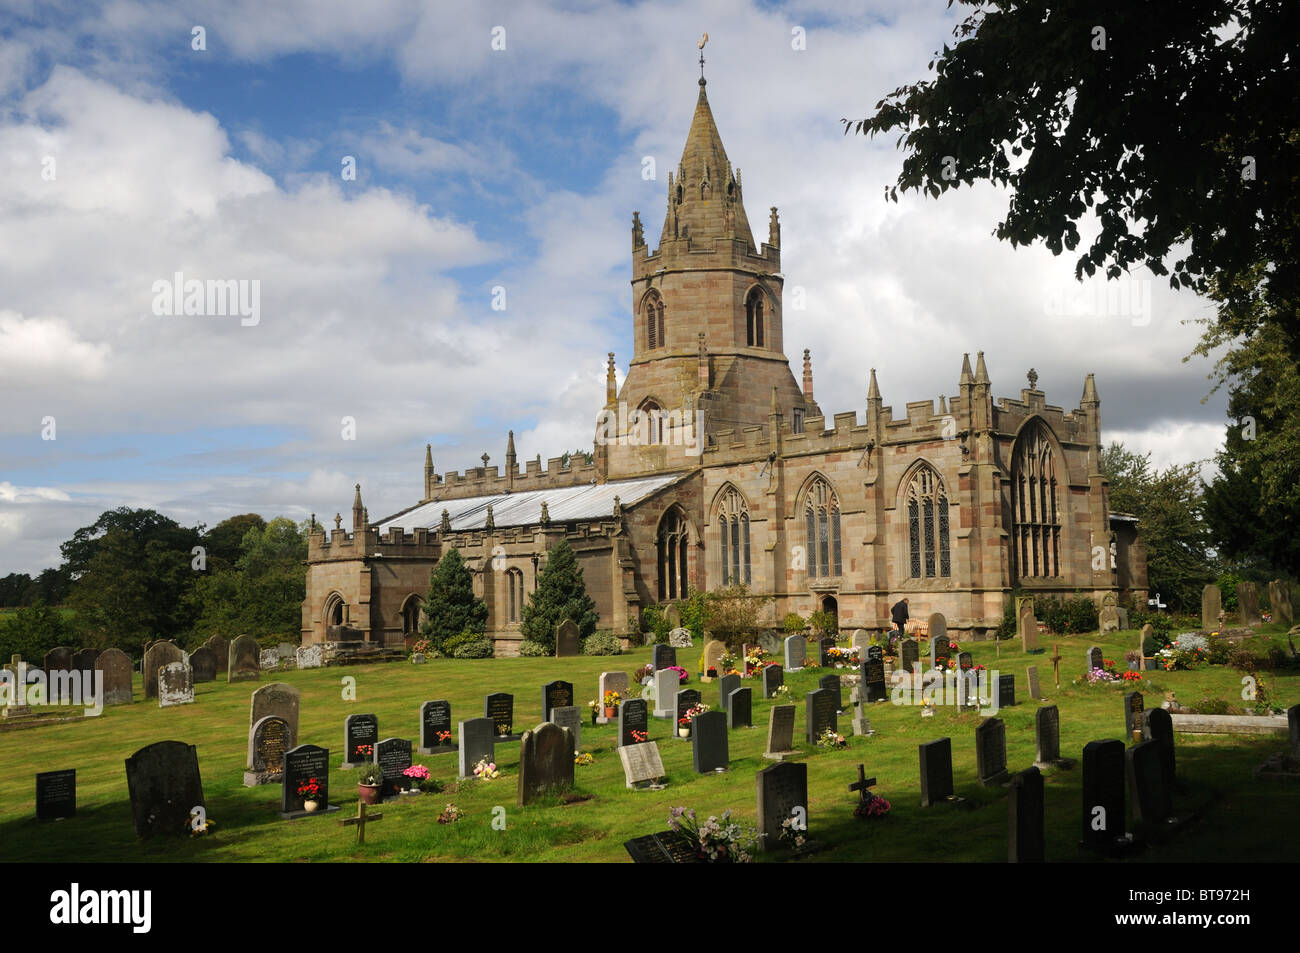 The Collegiate Church of St. Bartholomew, in Tong, Shropshire, England - Stock Image